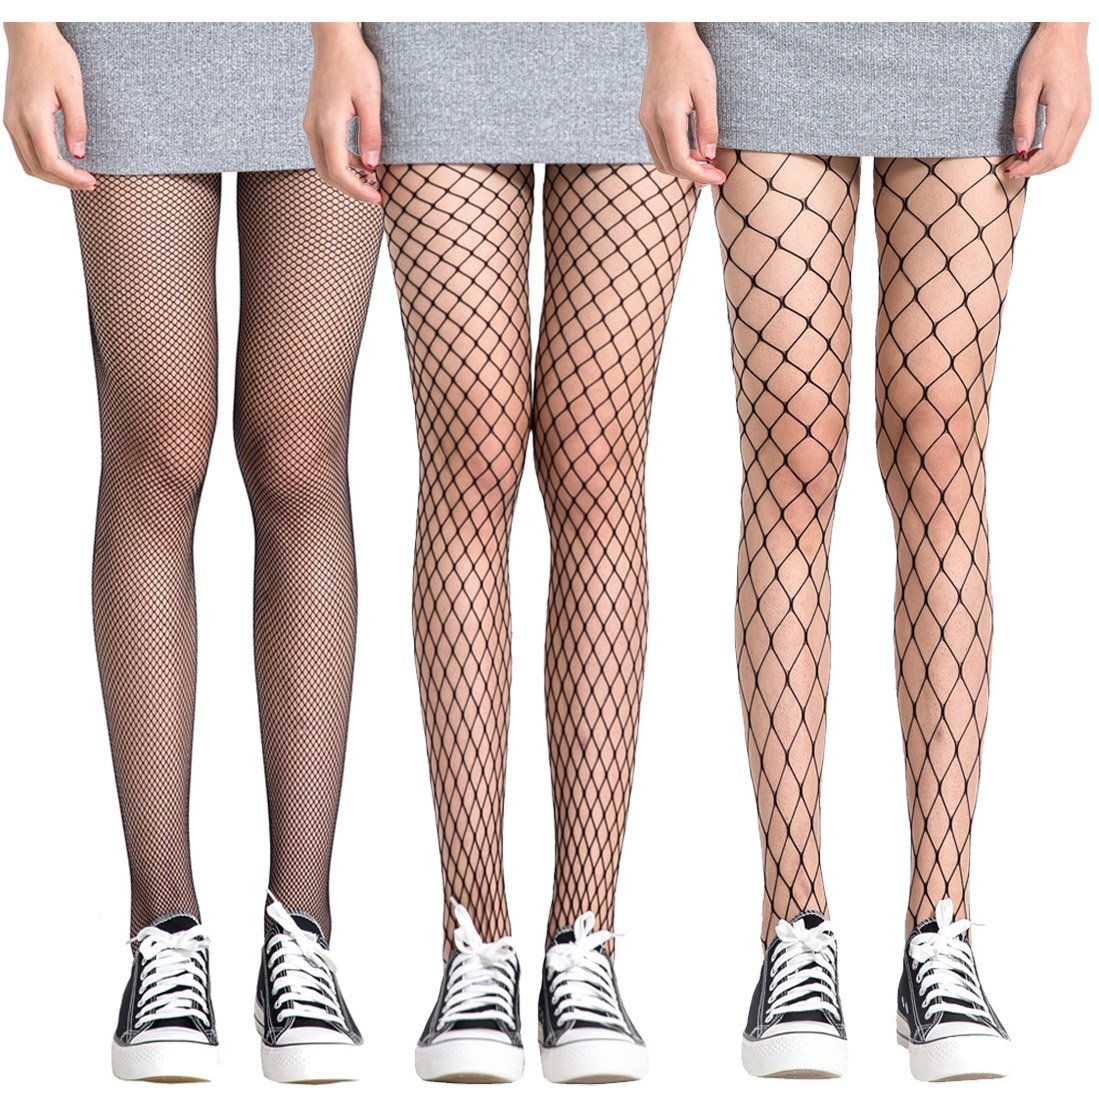 3bd5eb68d4fd8c FAYBOX 3 Pack Fishnet Stockings Hollow Stretchy Tights Seamless Sexy Net  Pantyhose Women (Net Design) at Amazon Women's Clothing store: